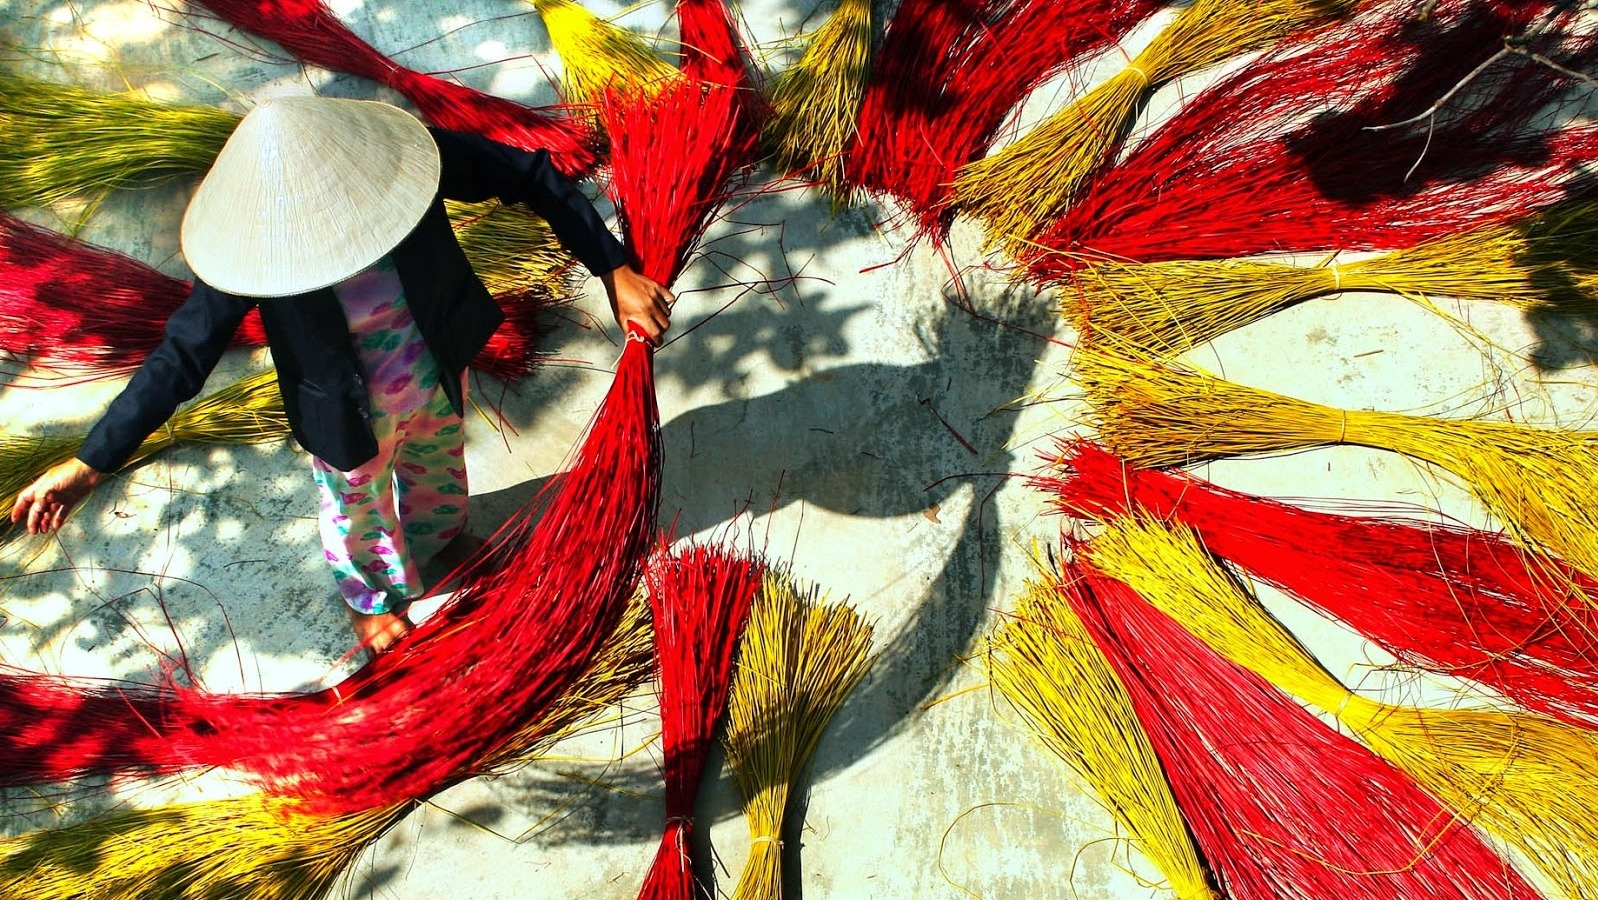 Nineteen traditional handicraft villages to meet in Hoi An, entertainment events, entertainment news, entertainment activities, what's on, Vietnam culture, Vietnam tradition, vn news, Vietnam beauty, news Vietnam, Vietnam news, Vietnam net news, vietnamne